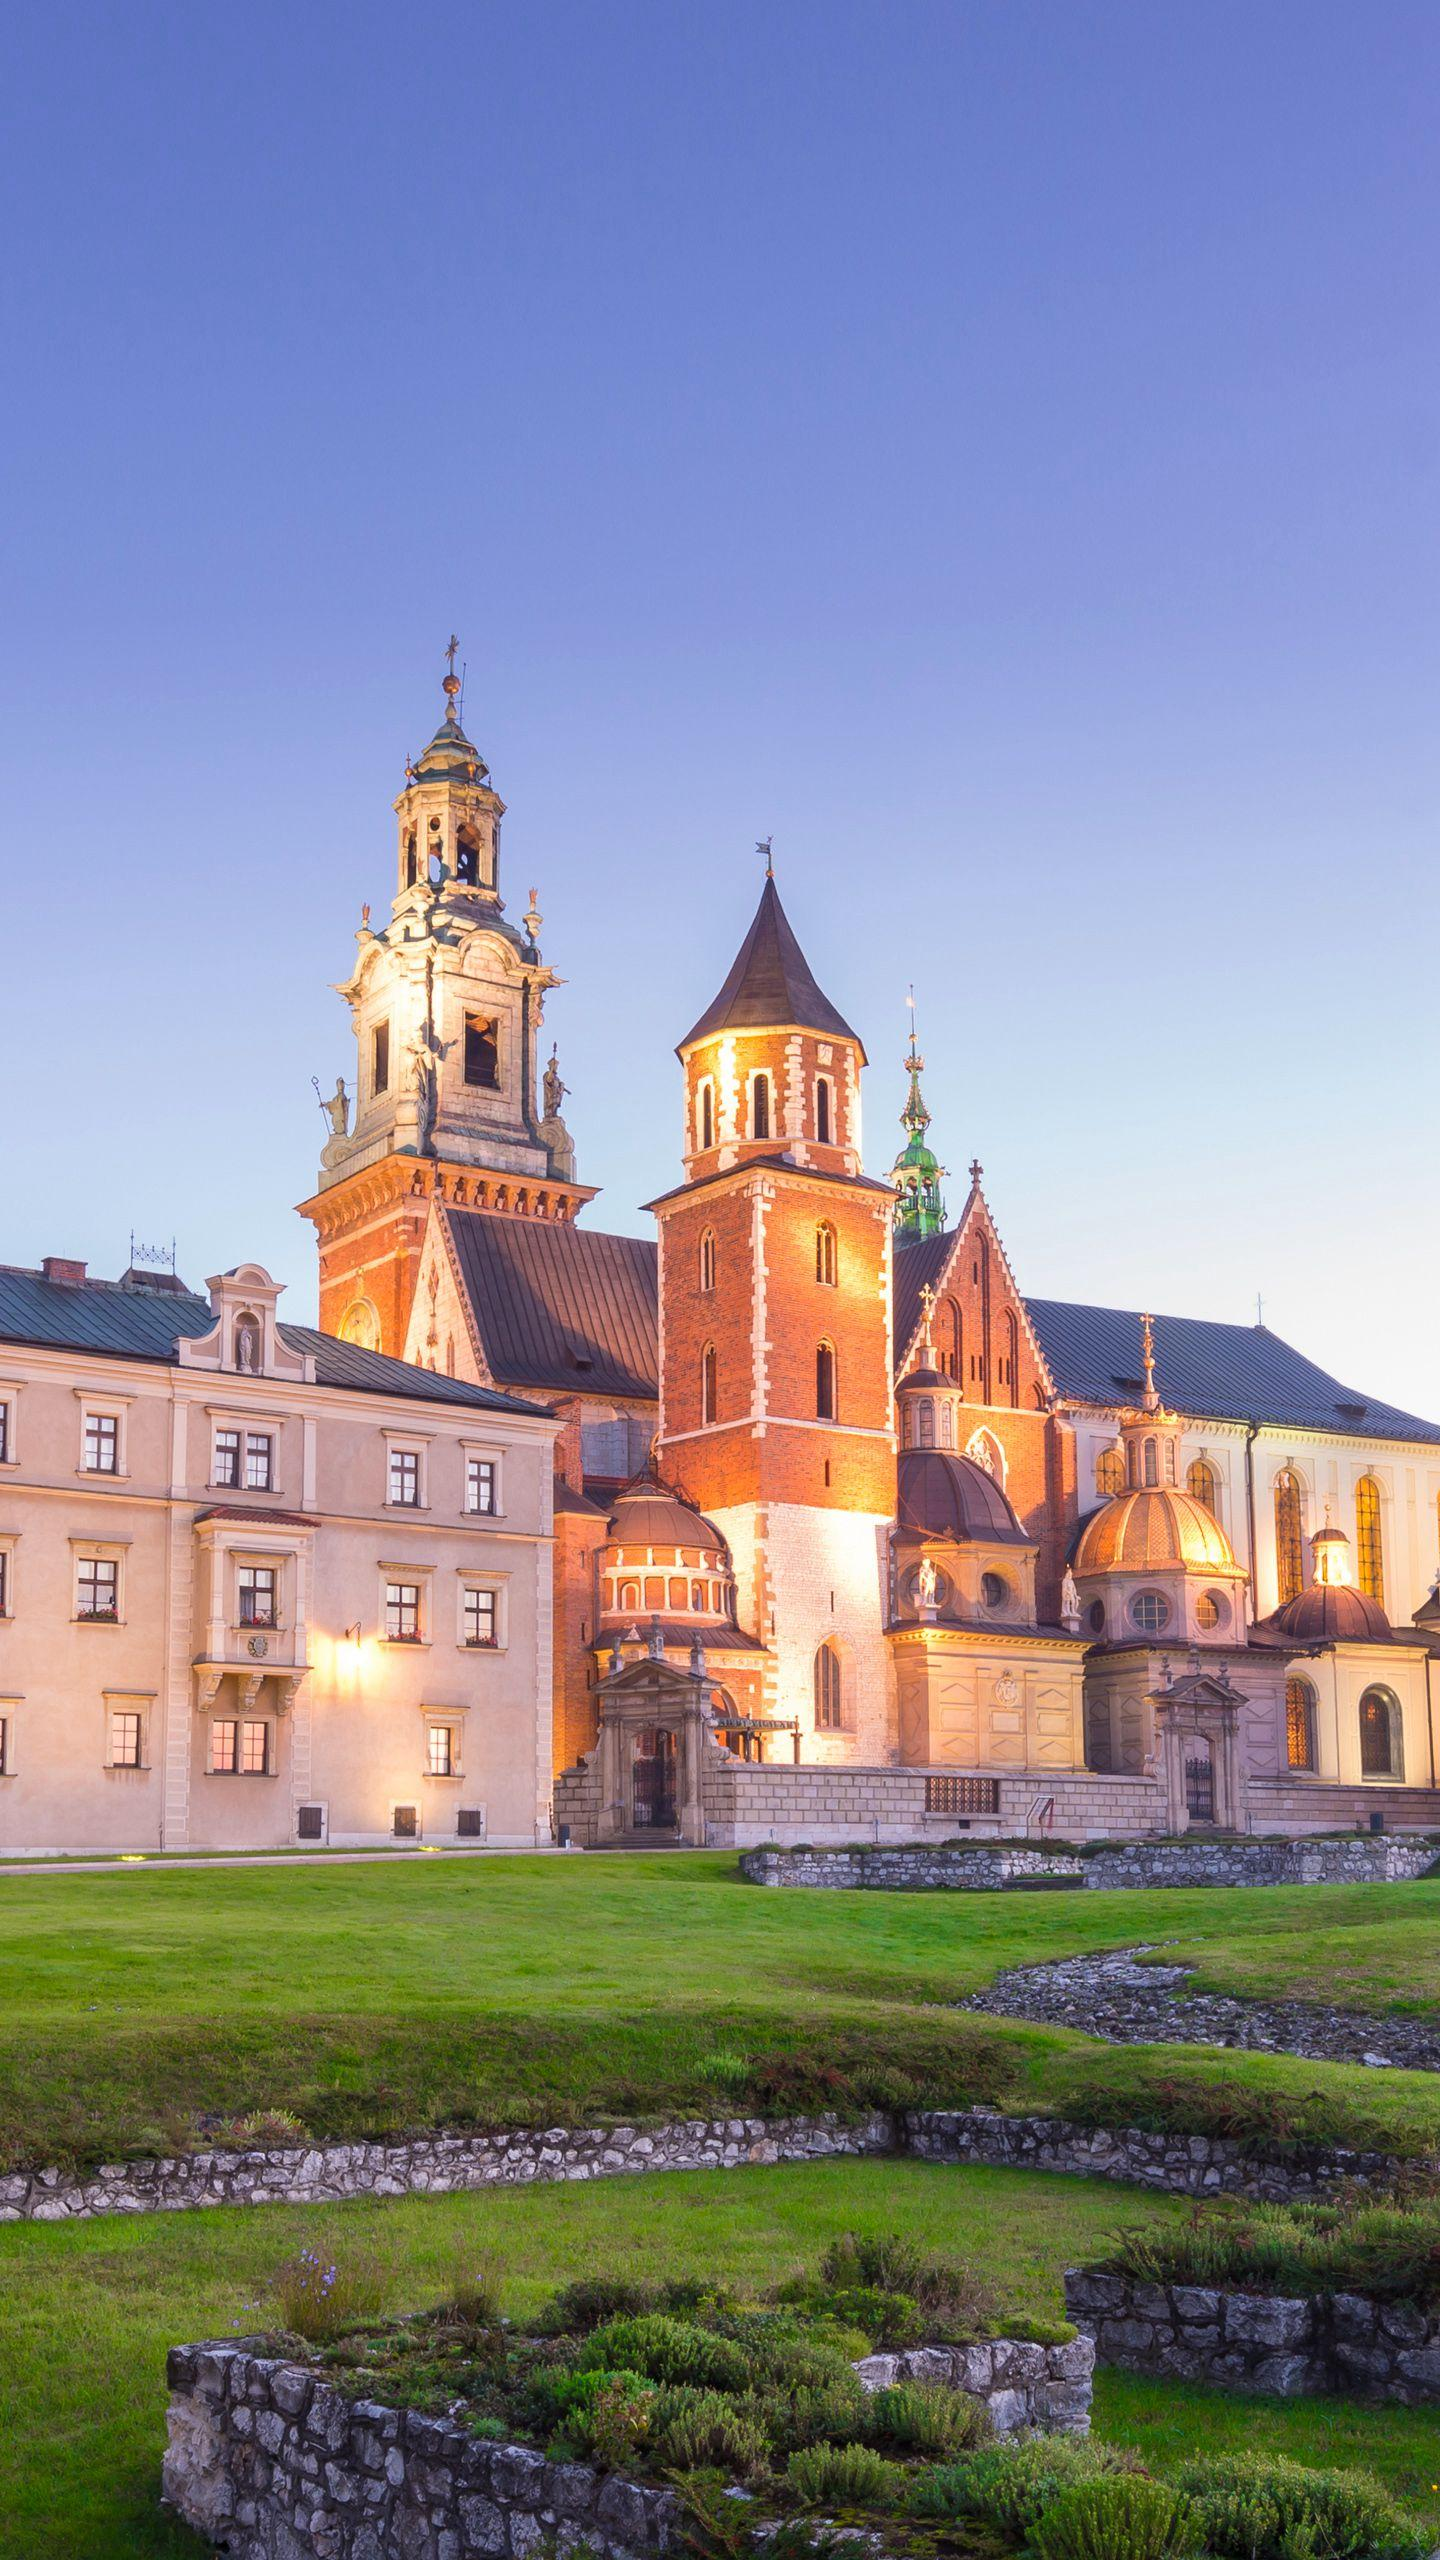 Poland - Wawel Castle. A Gothic building that has long been the residence of the Polish royal family and is one of the national symbols of Poland.